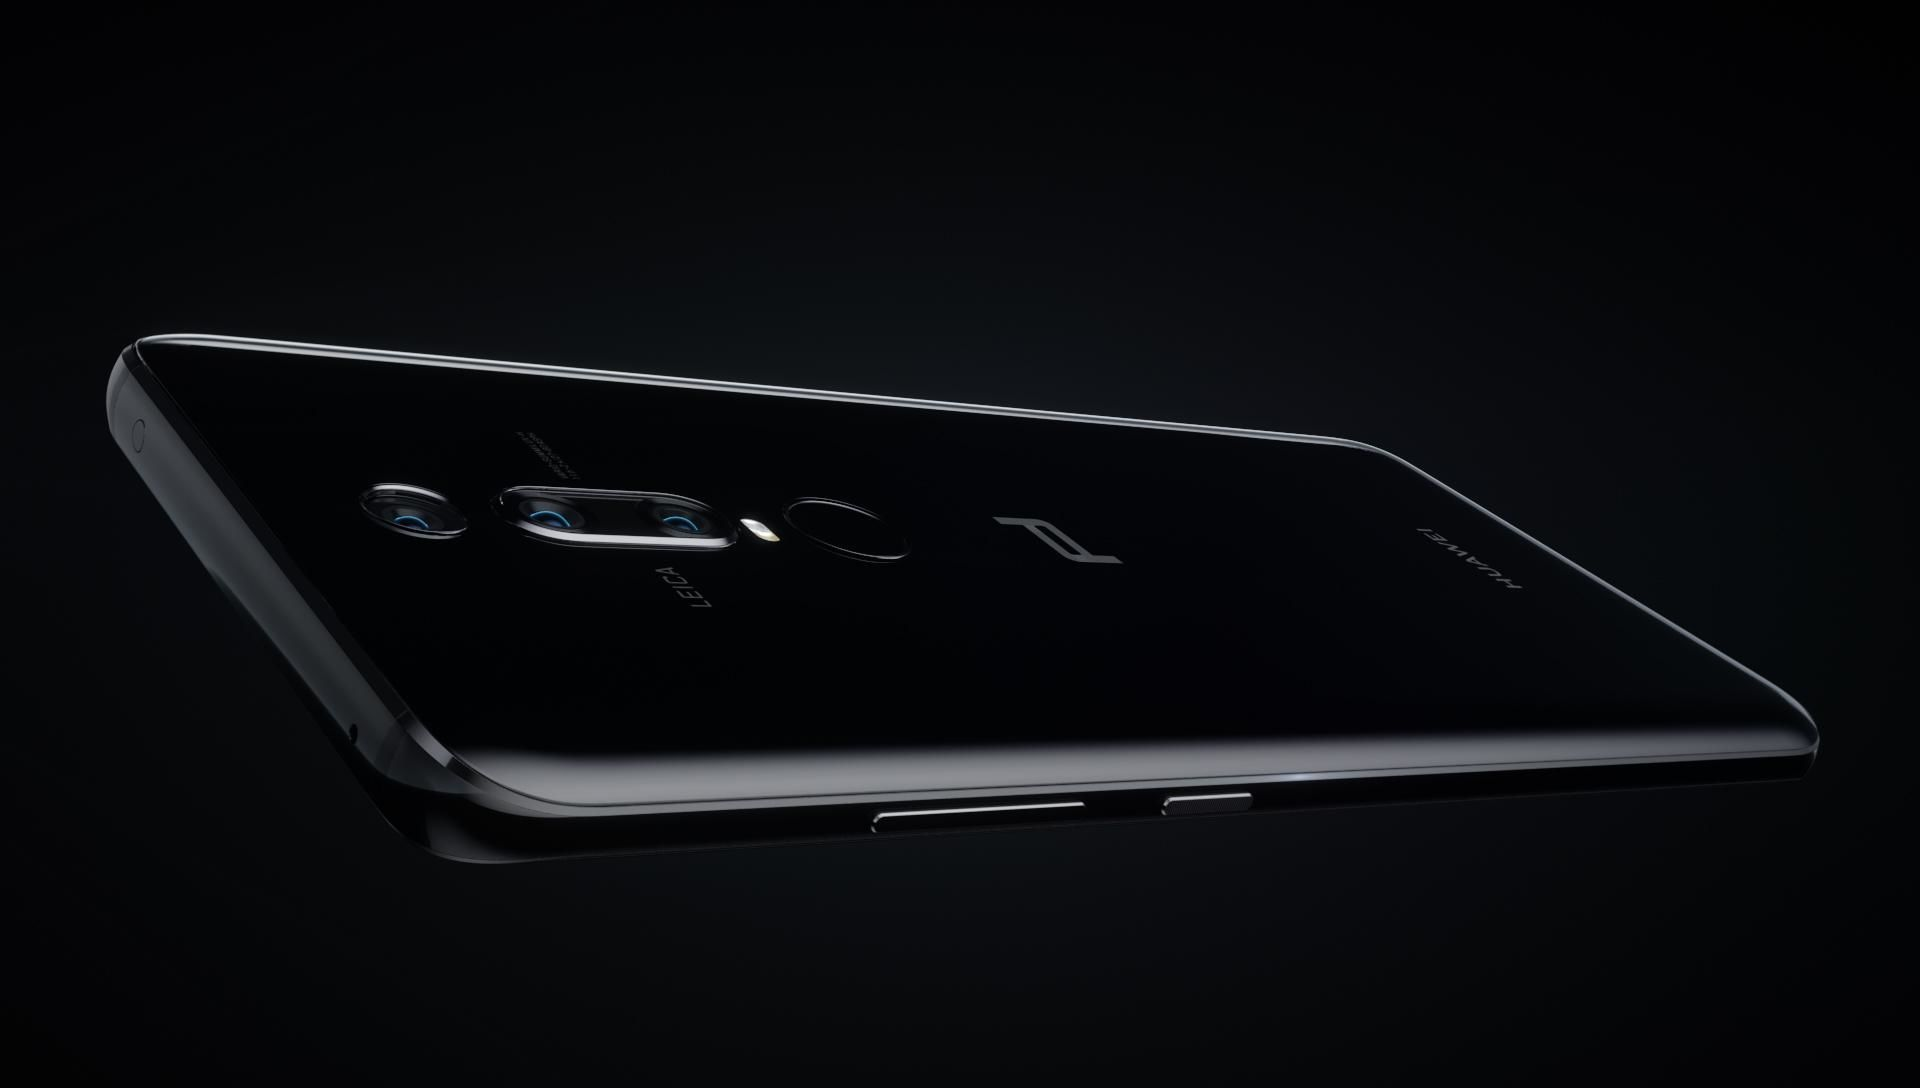 Black Porsche Design HUAWEI Mate RS showing bold curves